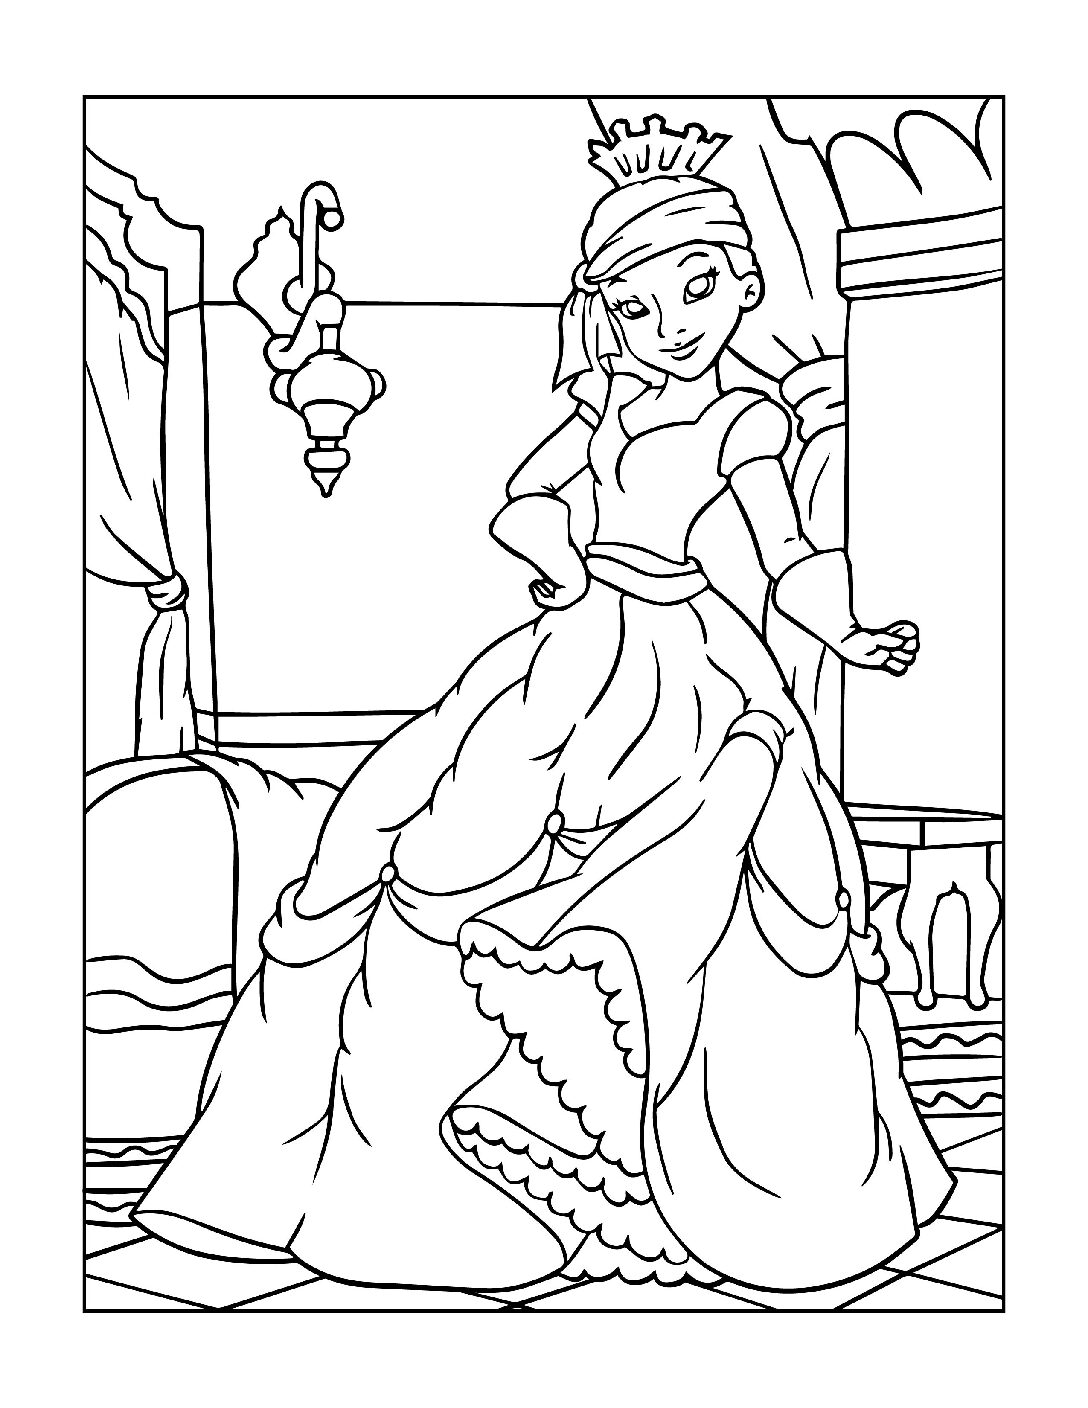 Coloring-Pages-Princess-19-01-pdf Free Printable Princesses Colouring Pages